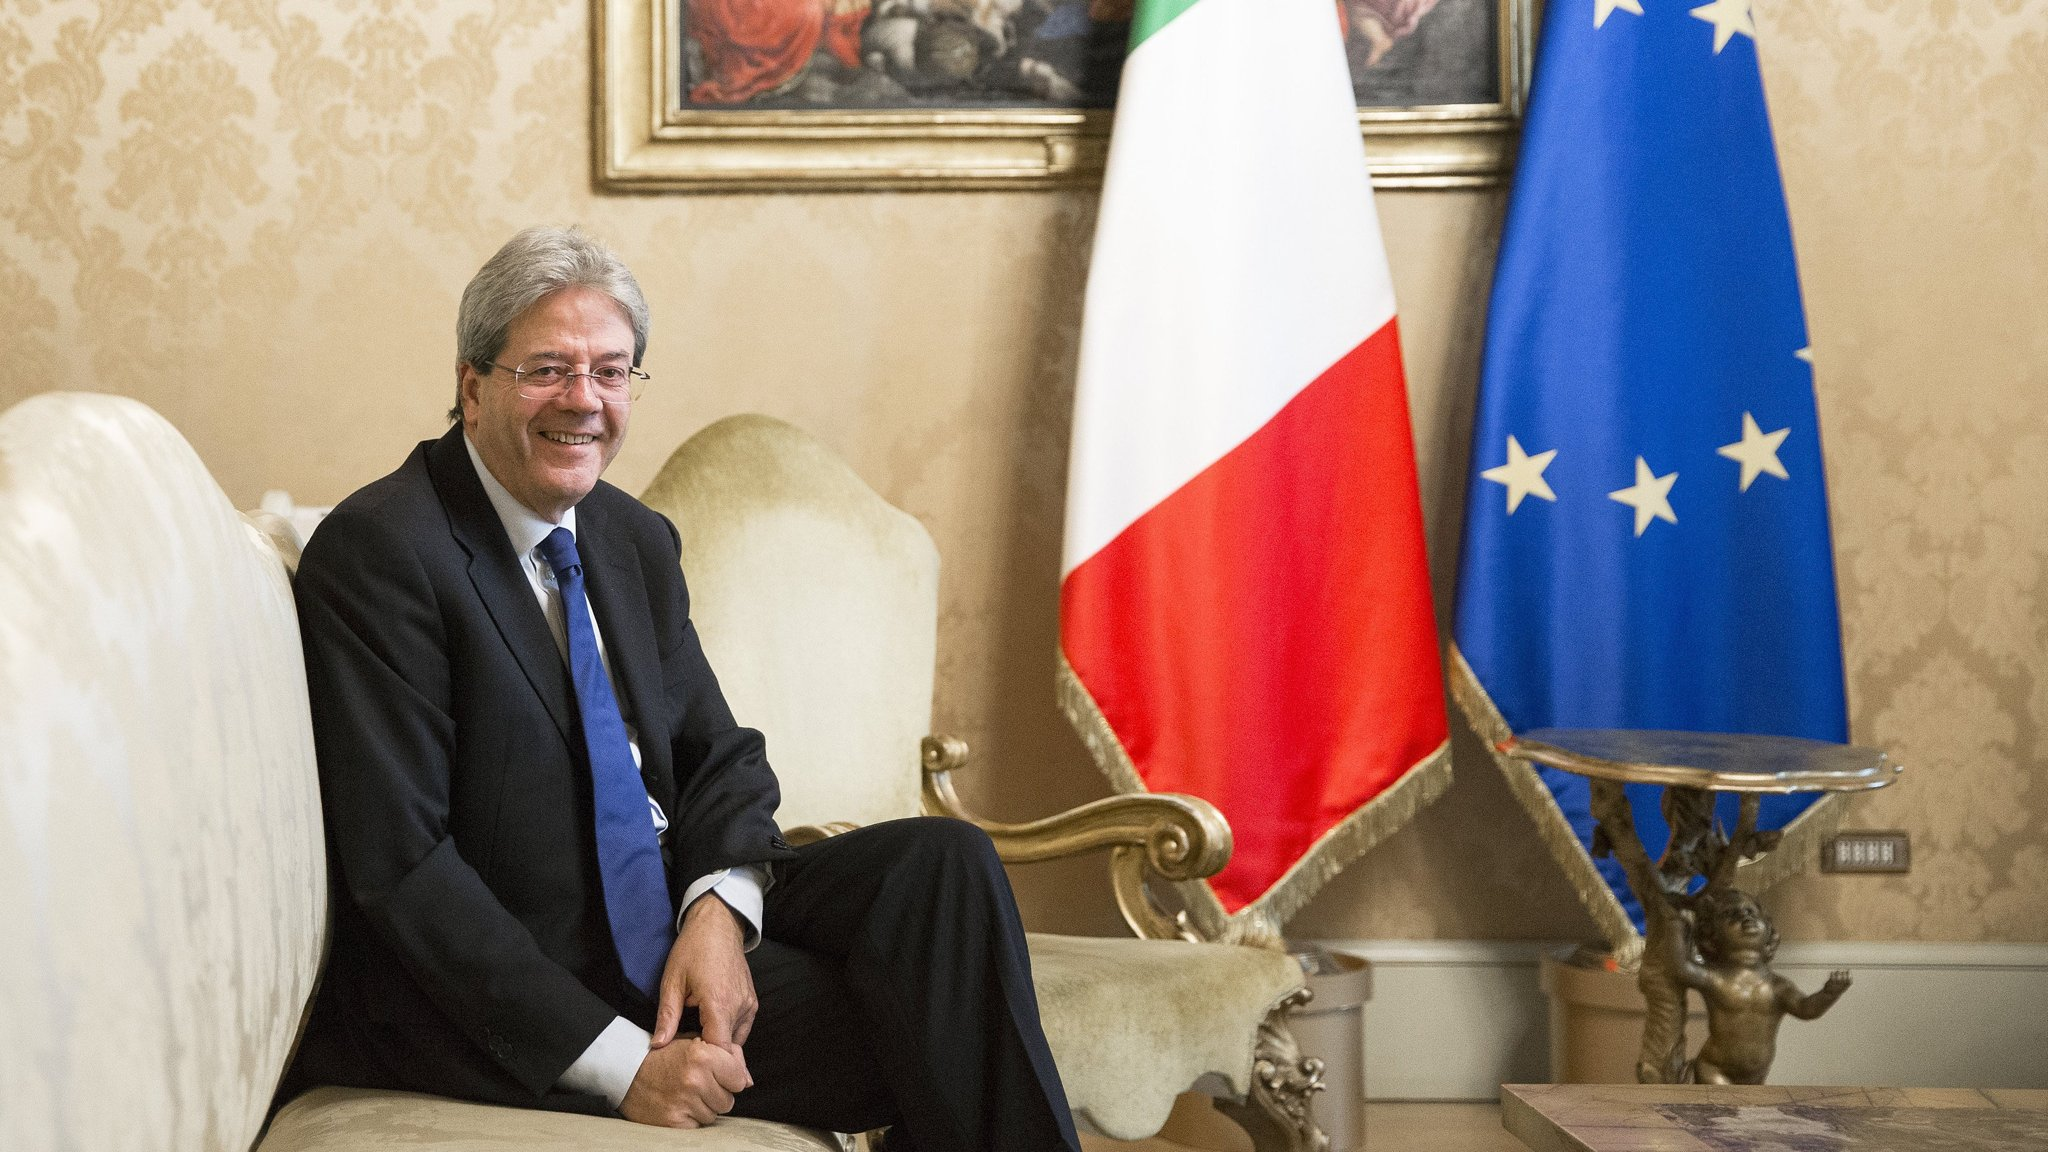 Italy's Gentiloni offers blunt warning on European integration